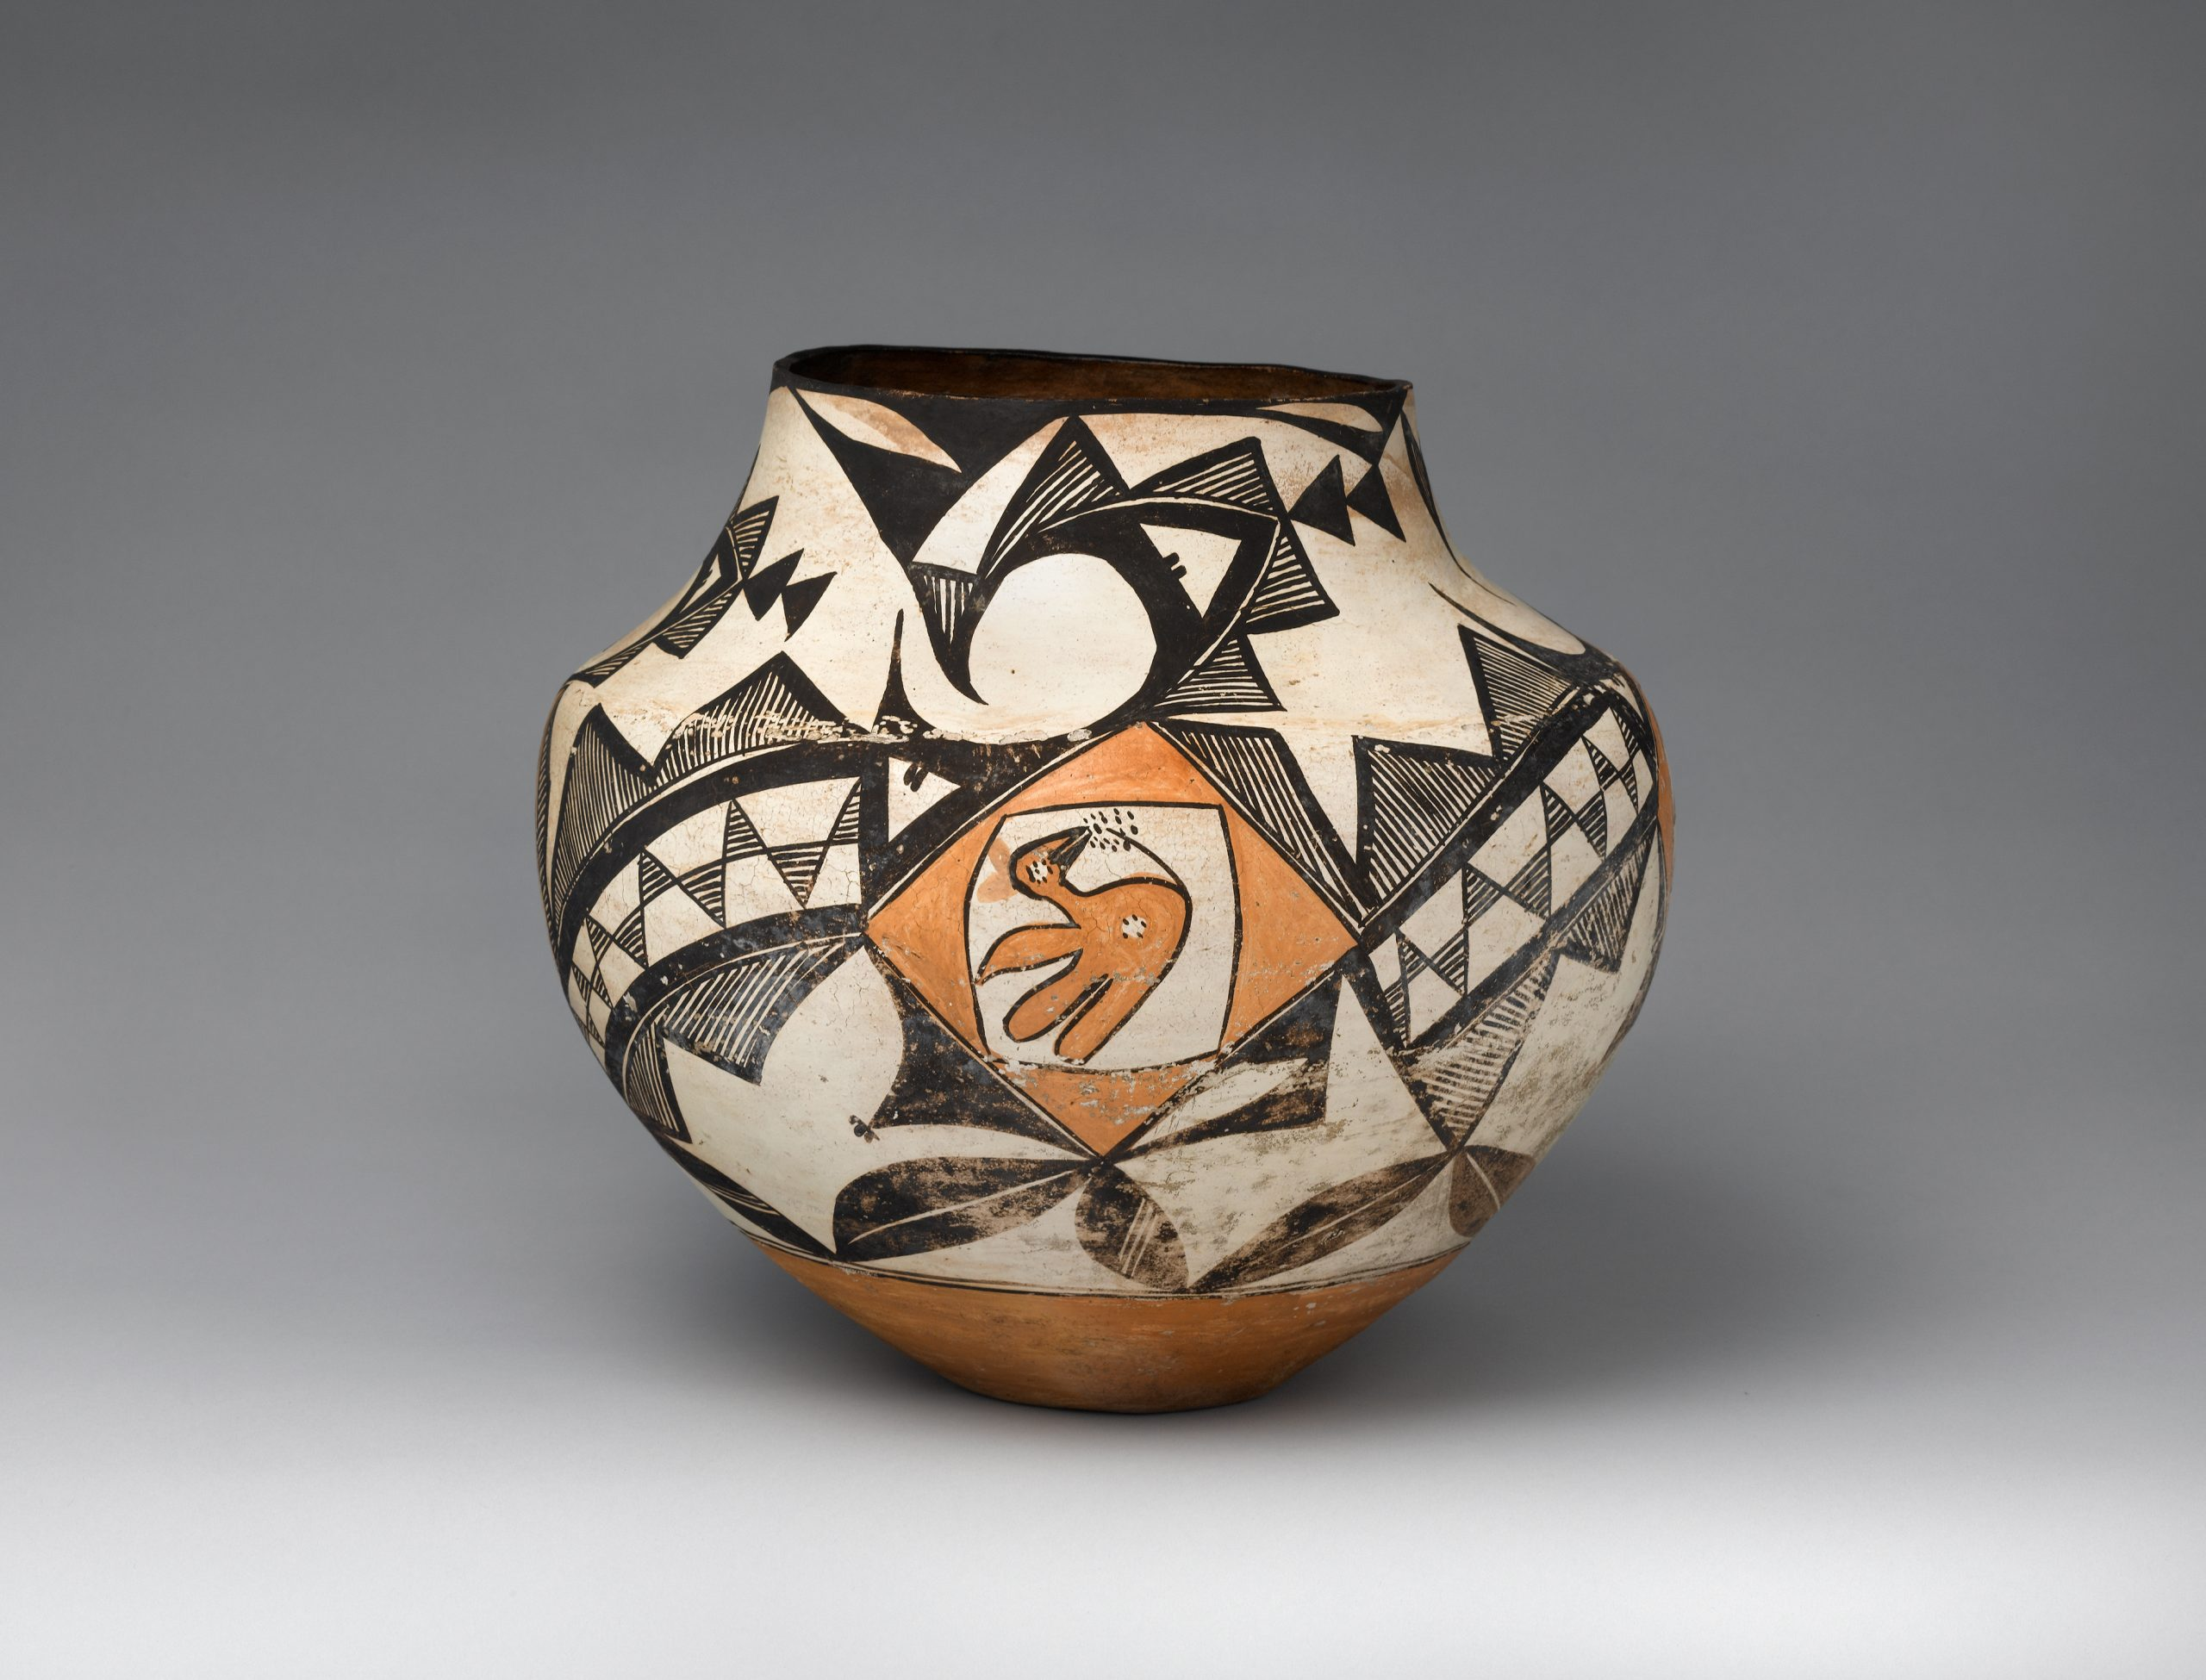 An Acoma jar decorated with a yellow bird and abstract geometric shapes and lines in black, white, and yellow.